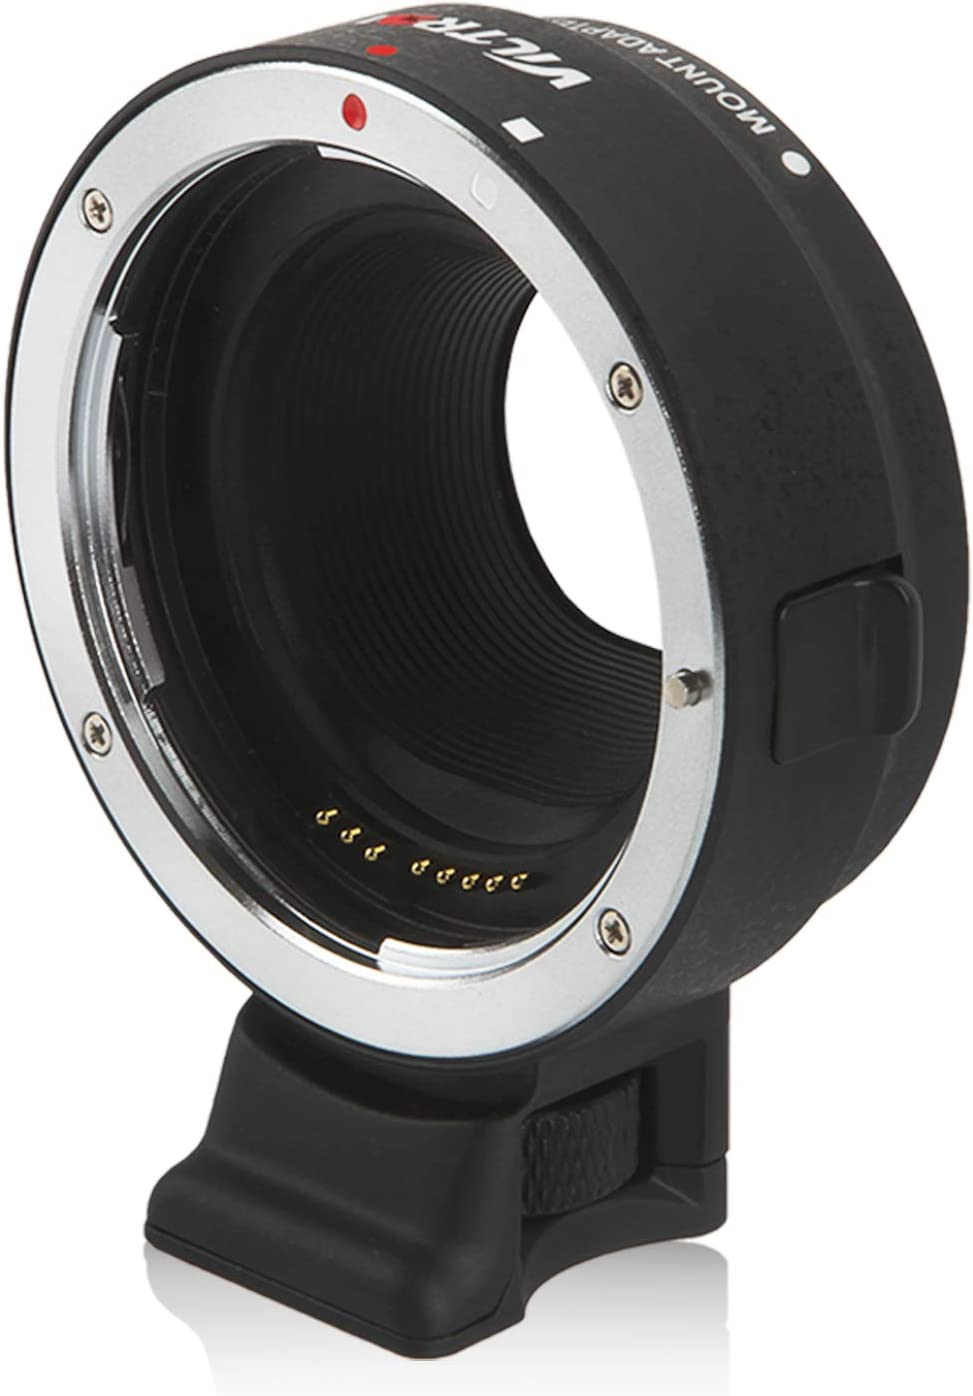 Mirrorless Cameras M M2 M3 M5 M6 M10 M50 M100 VILTROX Electronic Auto Focus Focal Reducer Booster Lens Mount Adapter for Canon EF Series Lenses to Canon EOS-M EF-M Mount